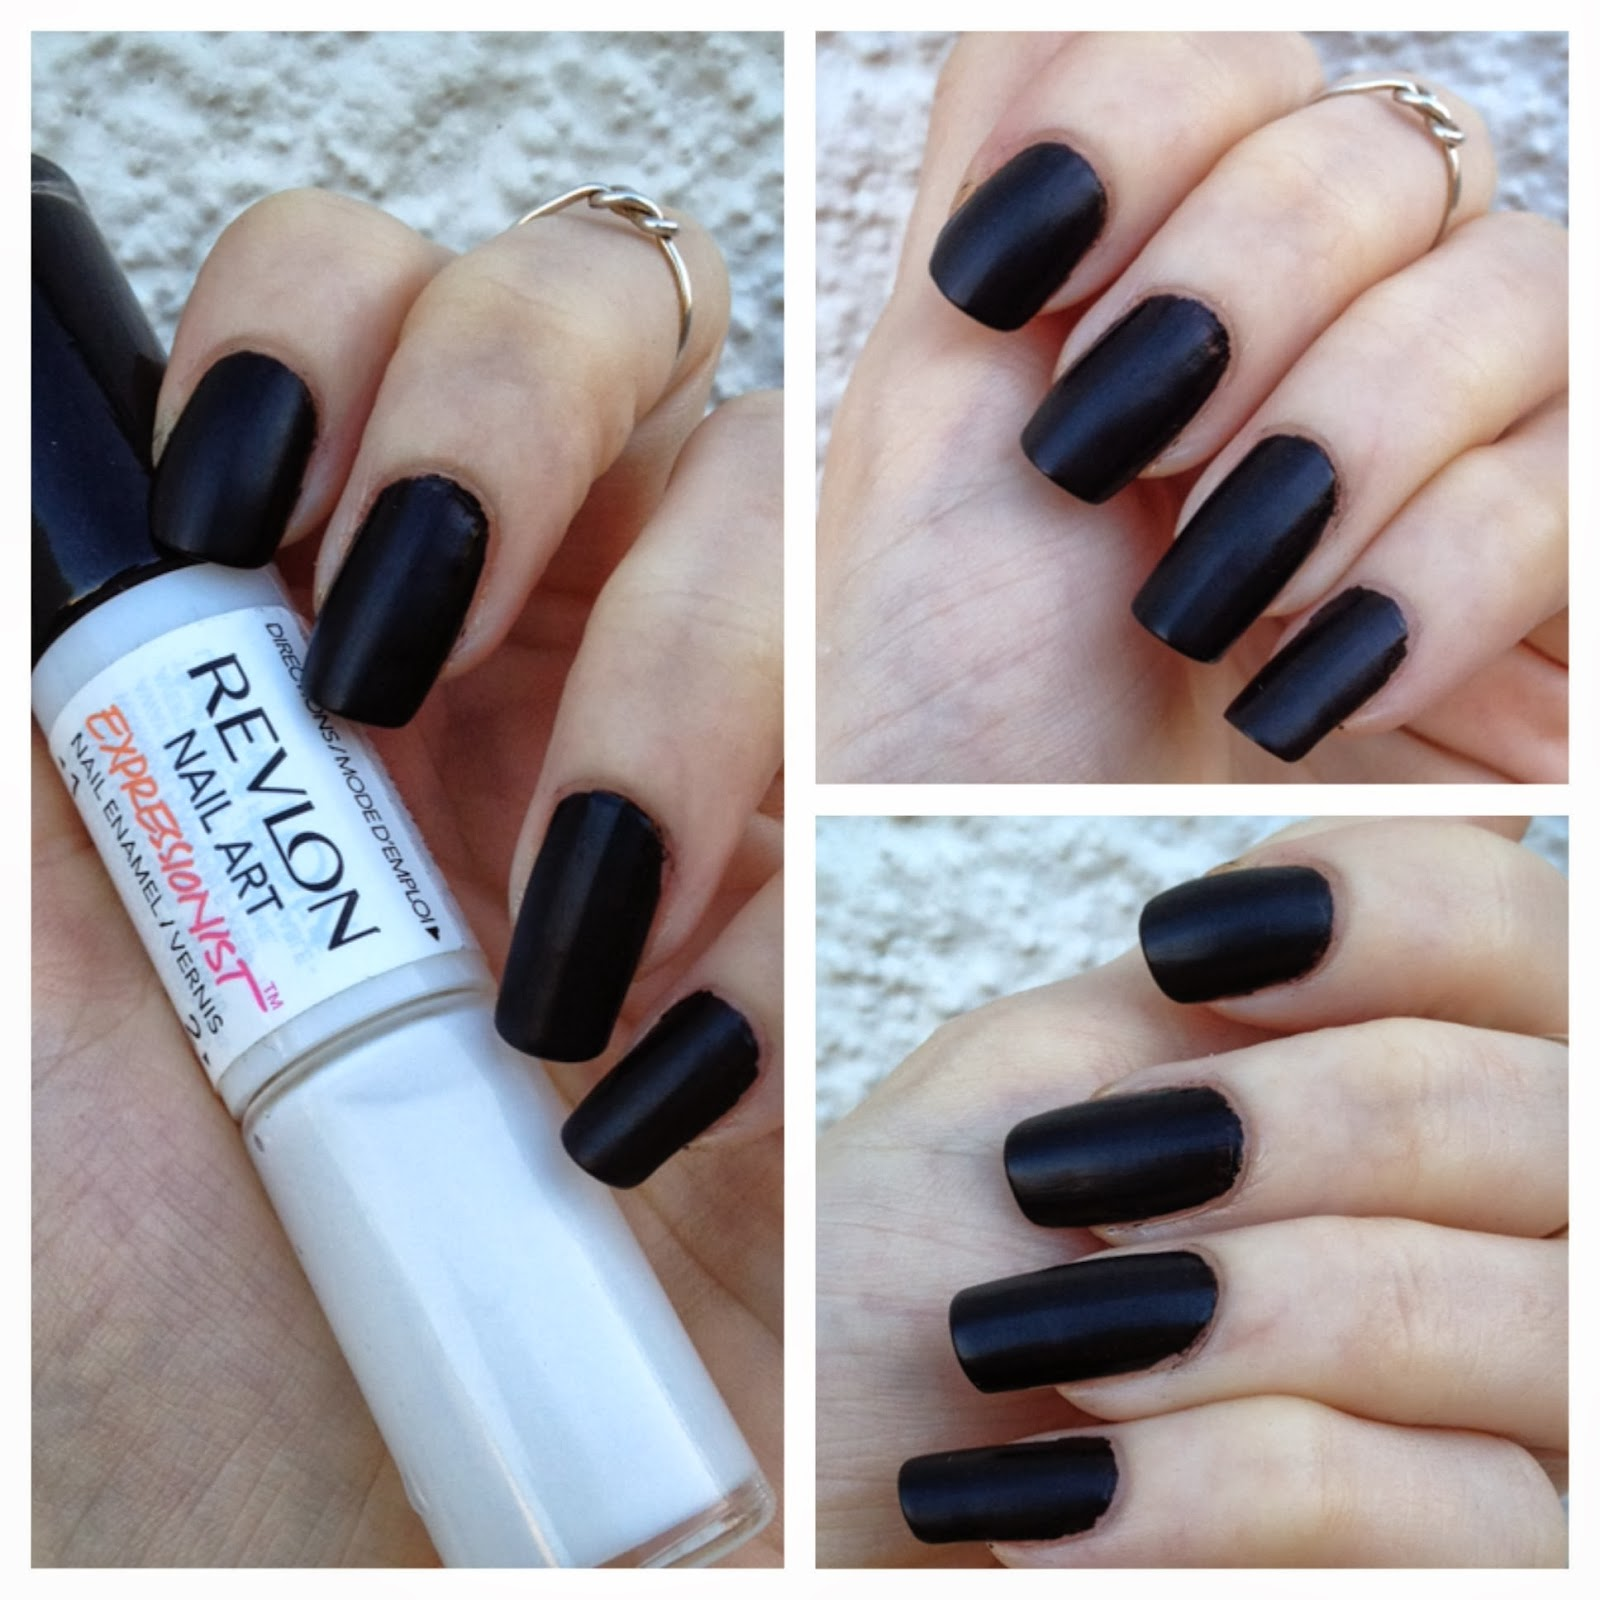 cat eyes & skinny jeans: halloween-perfect black polishes